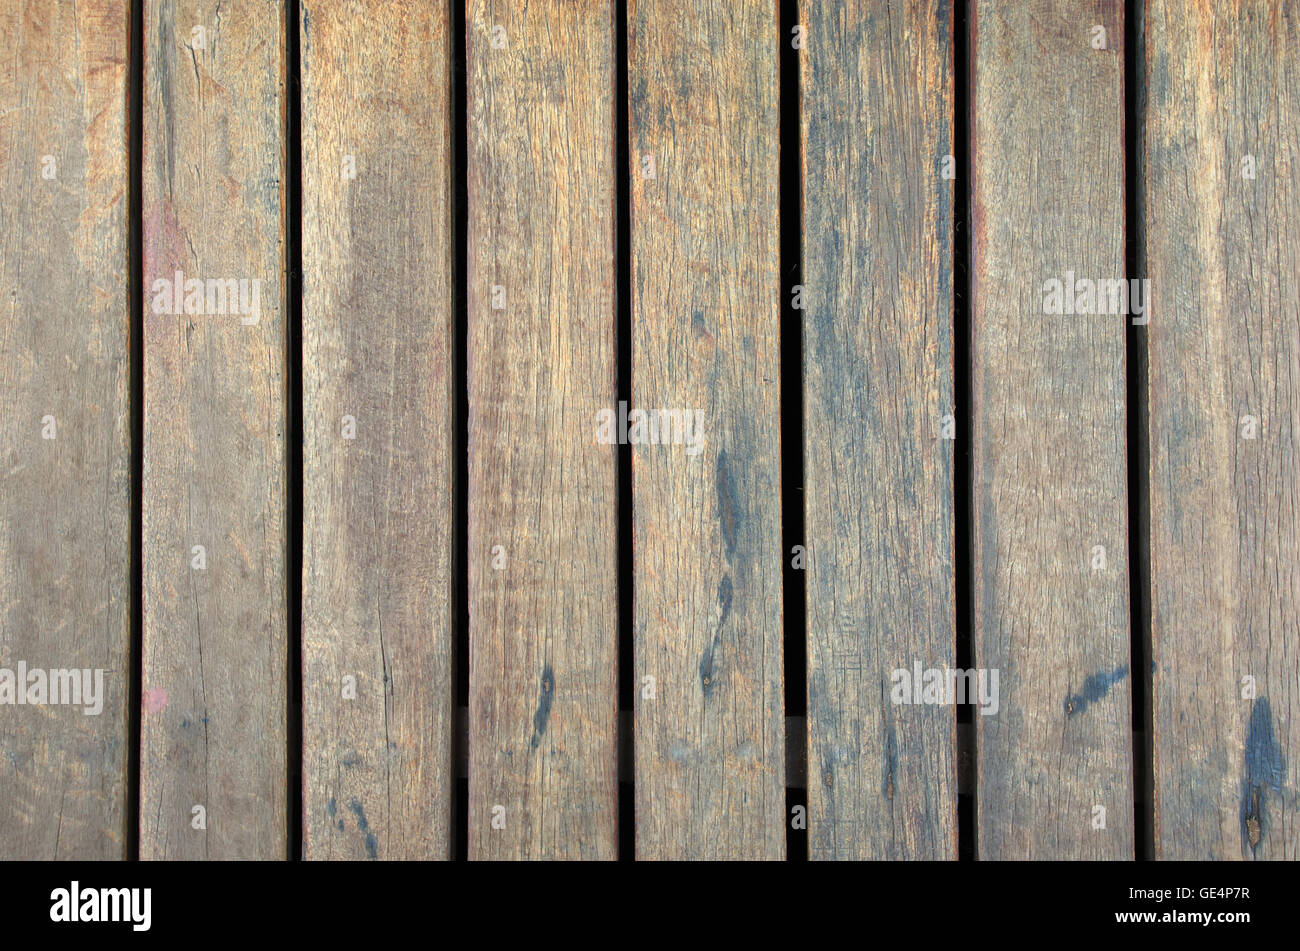 Wooden plates assembled together for graphic resource usage - Stock Image